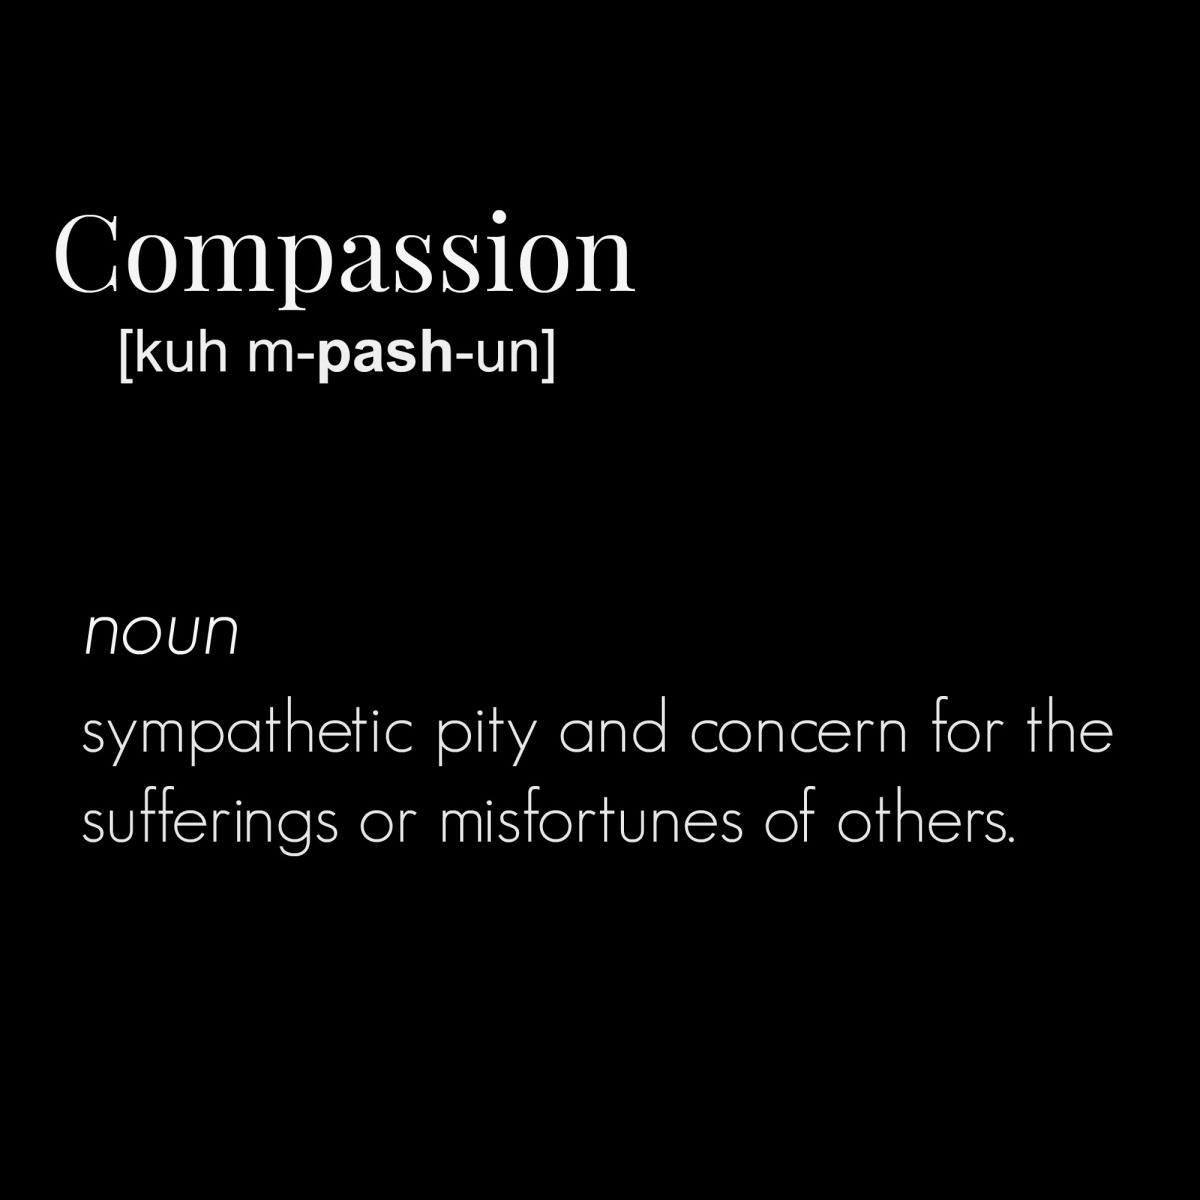 20 Ideas for Compassion - Writing Prompts